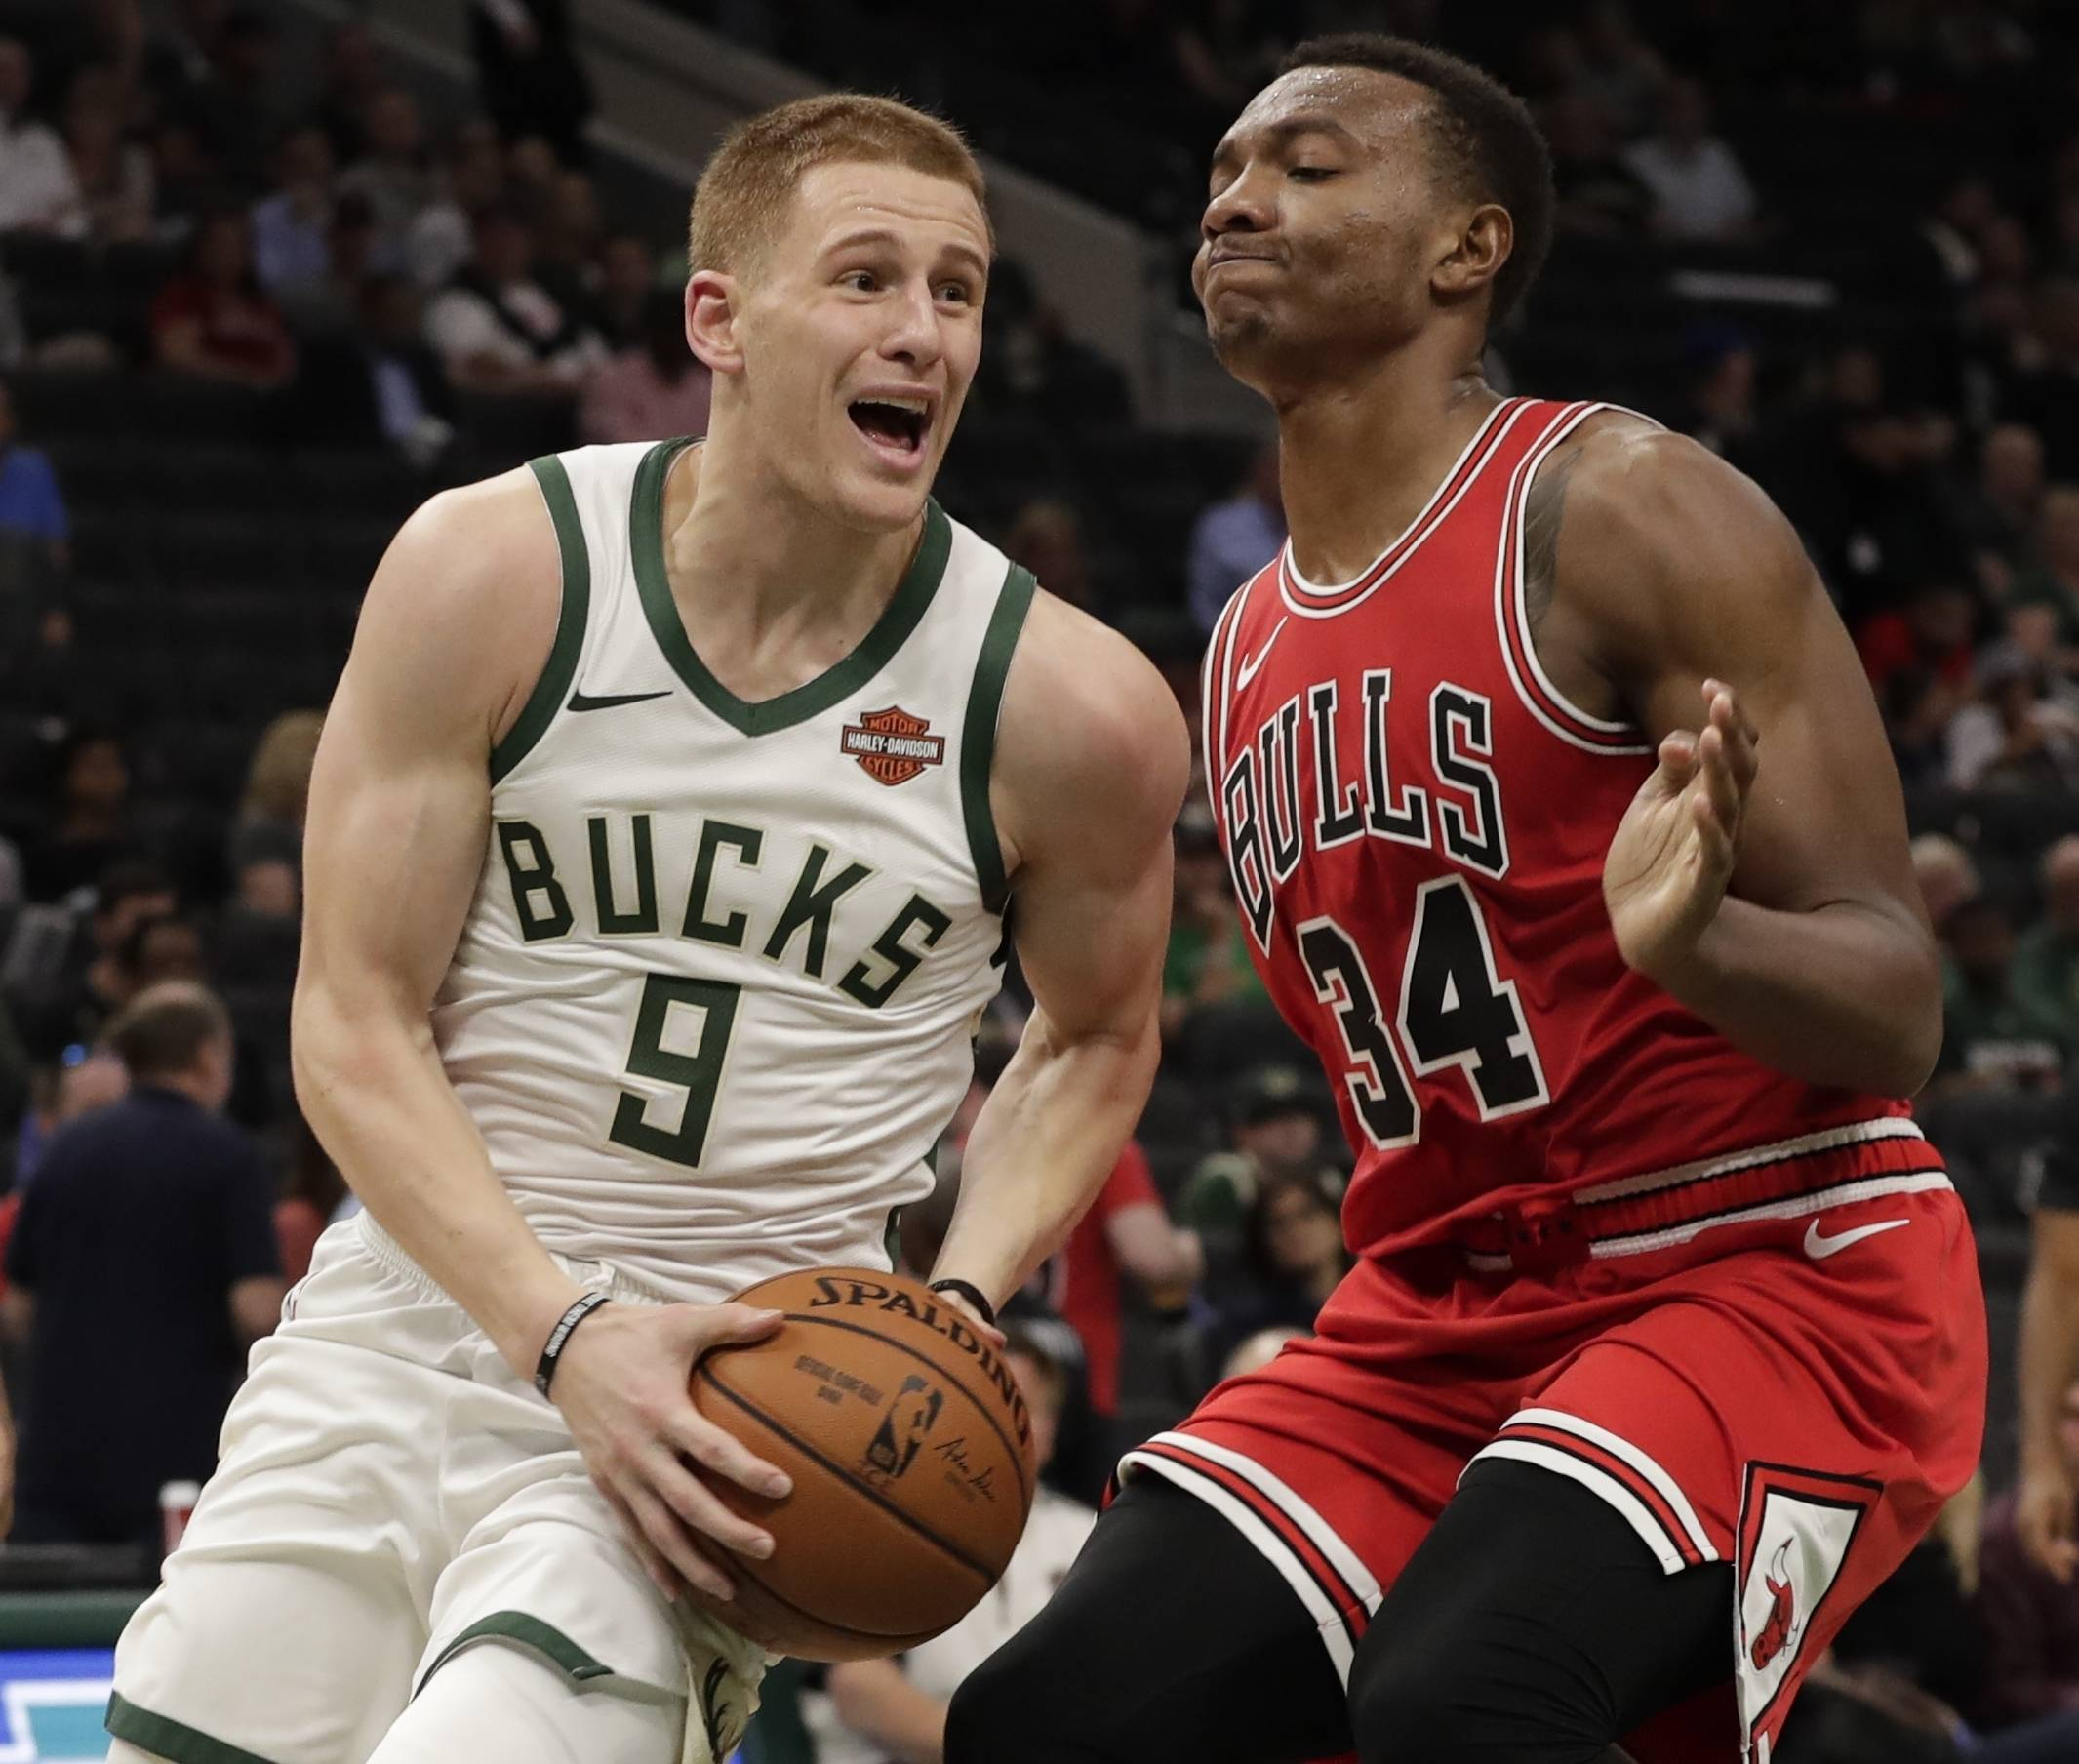 The Bulls' Wendell Carter Jr. shuts down Milwaukee's Donte DiVincenzo in a preseason game this month. In Thursday's season-open at Philadelphia, the Bulls' rookie gets to work against the Sixers' 7-foot center Joel Embiid.